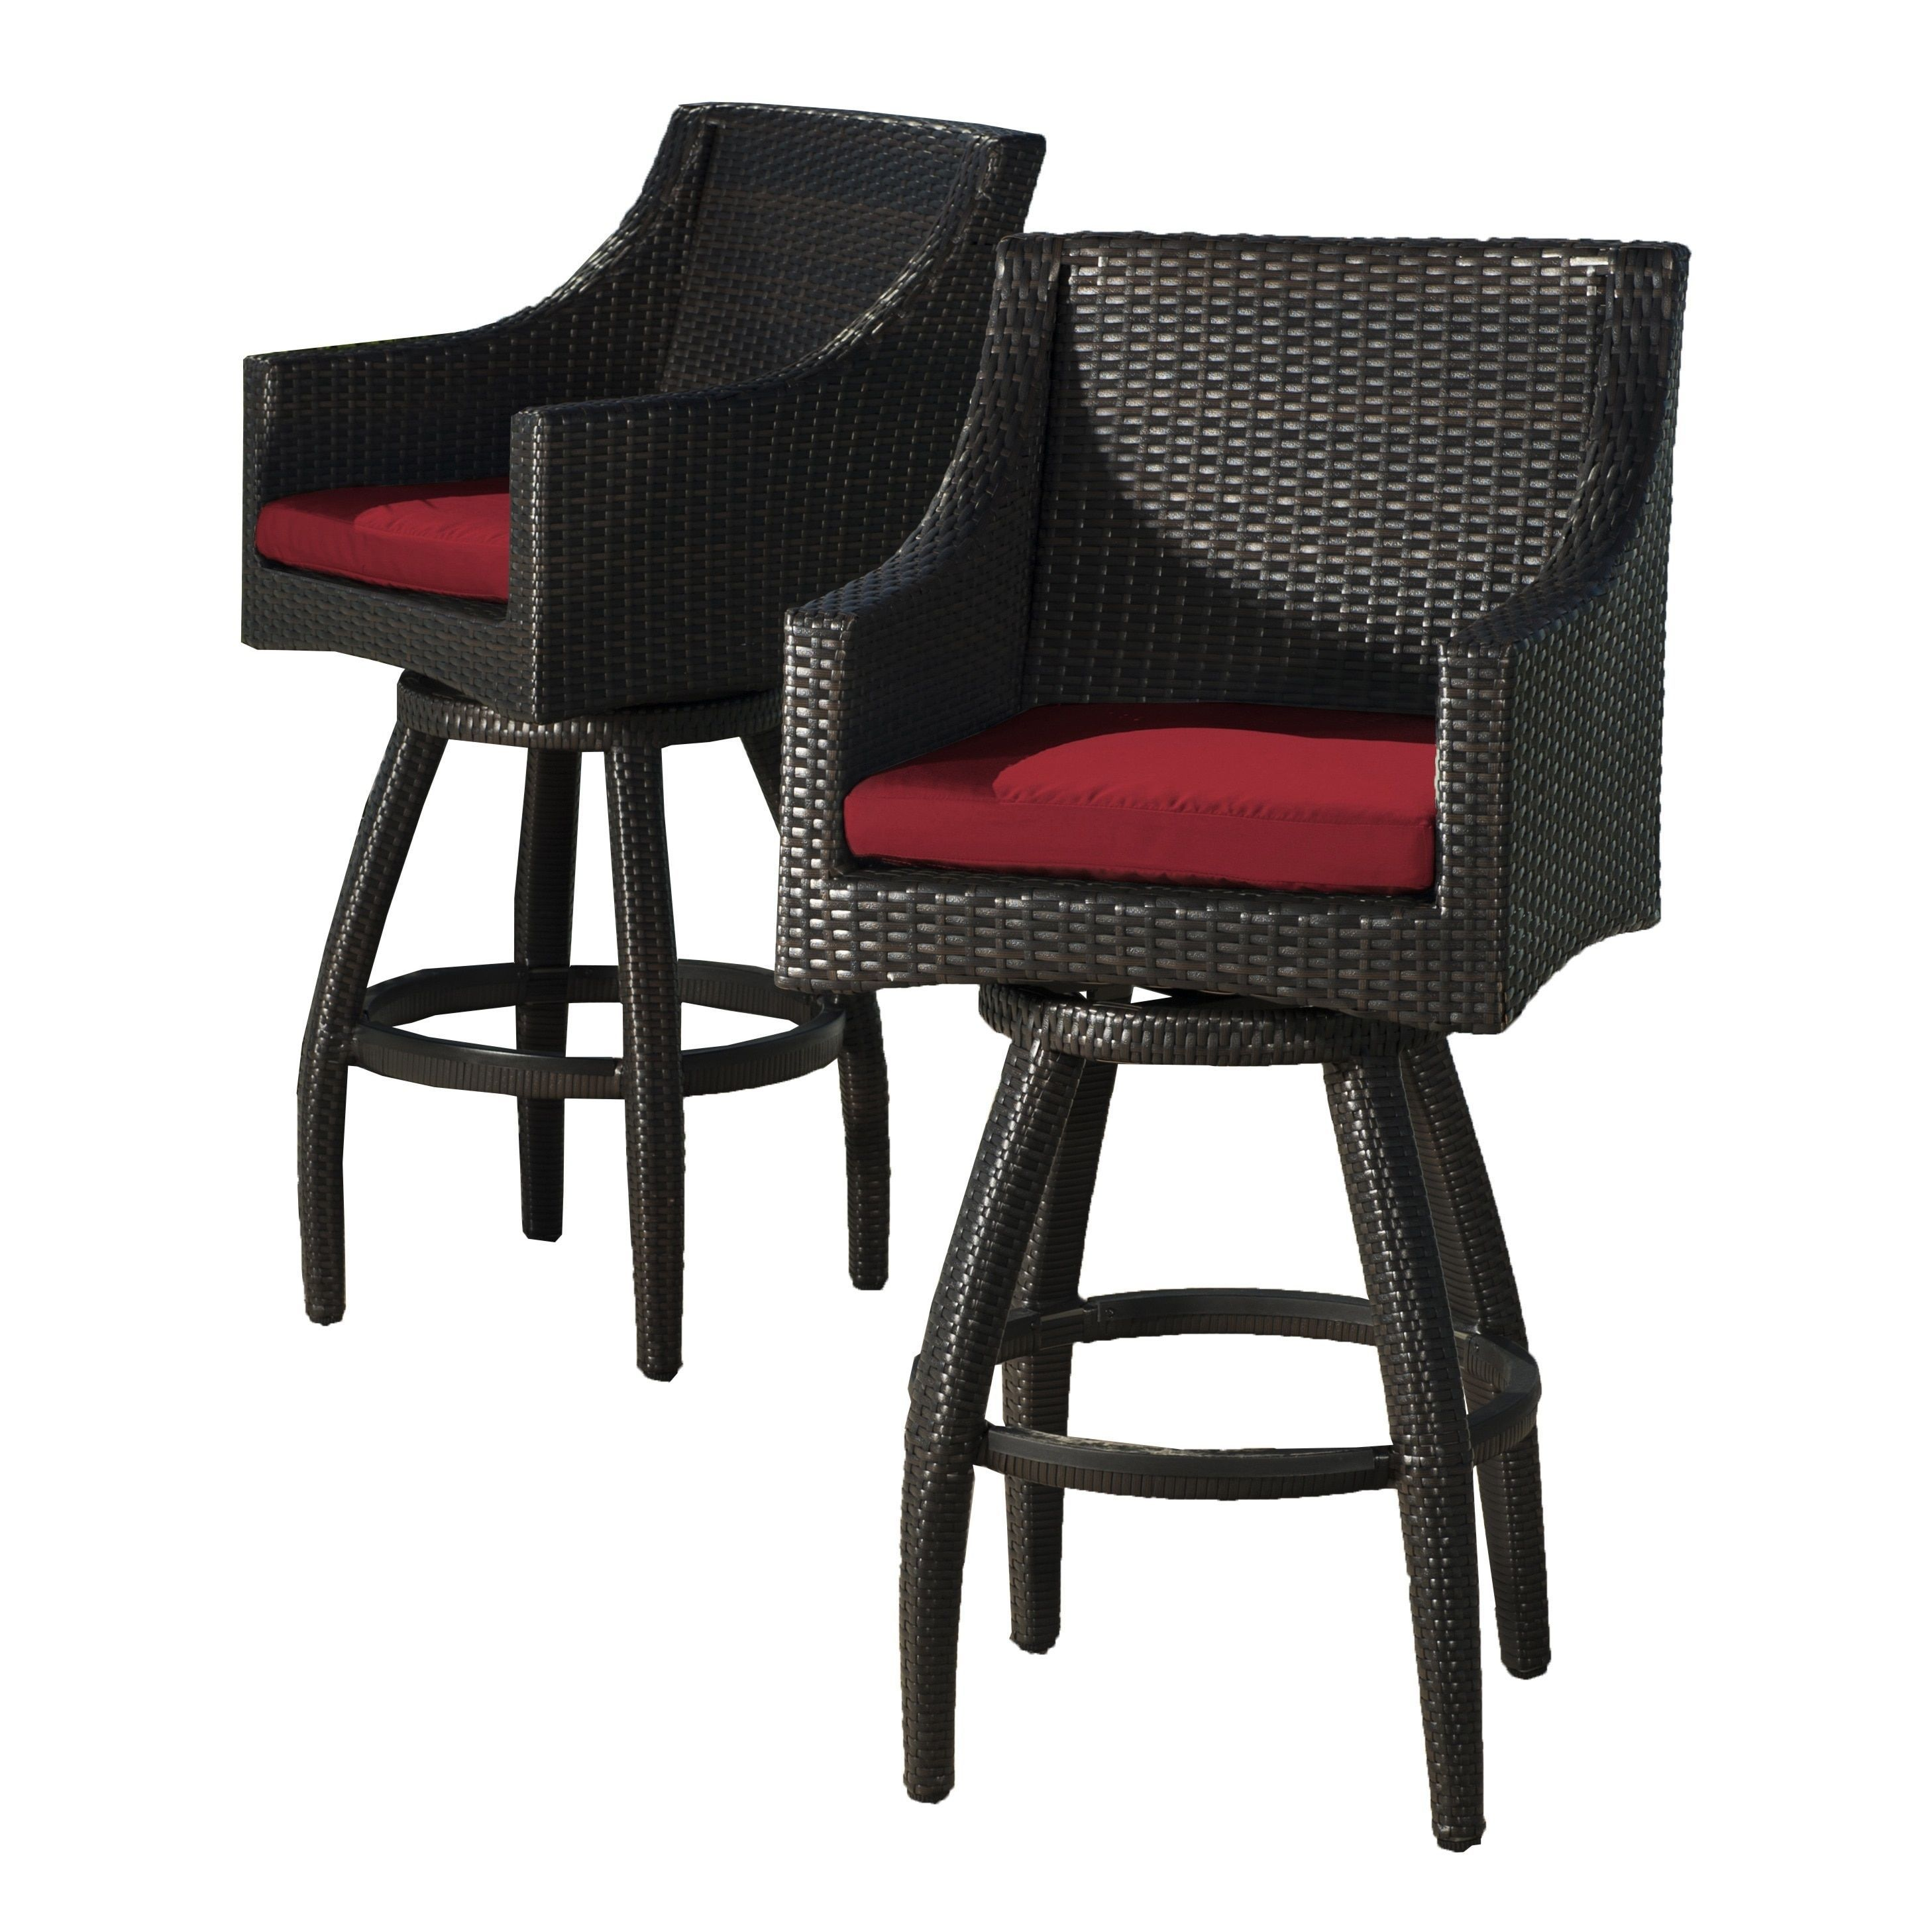 Set of 2 deco sunset red swivel barstools by rst brands sunset red